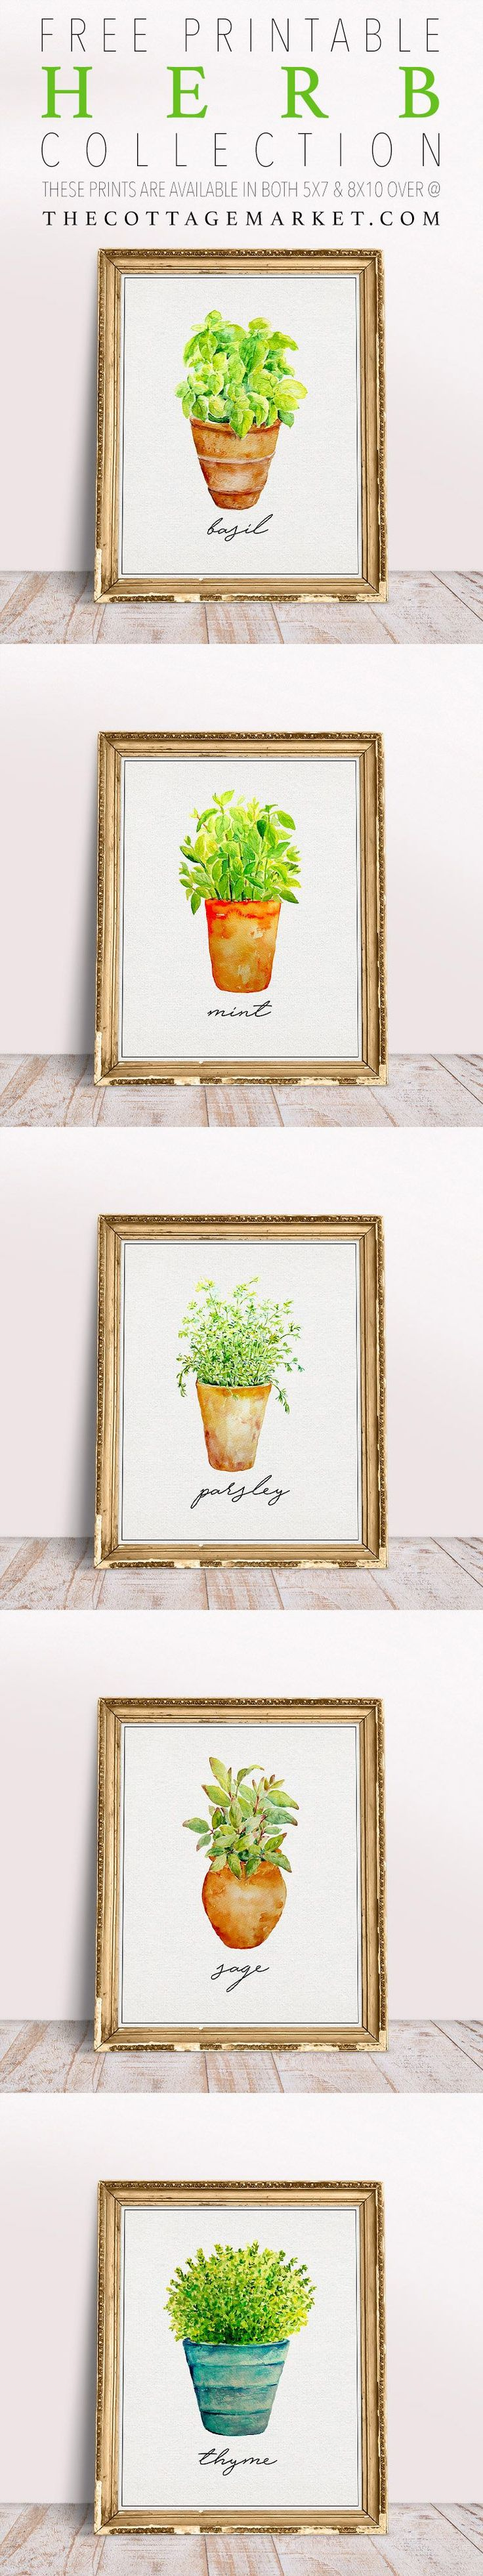 Kitchen wall hanging ideas - Free Printable Herb Collection The Cottagehang Ondiy Wallfree